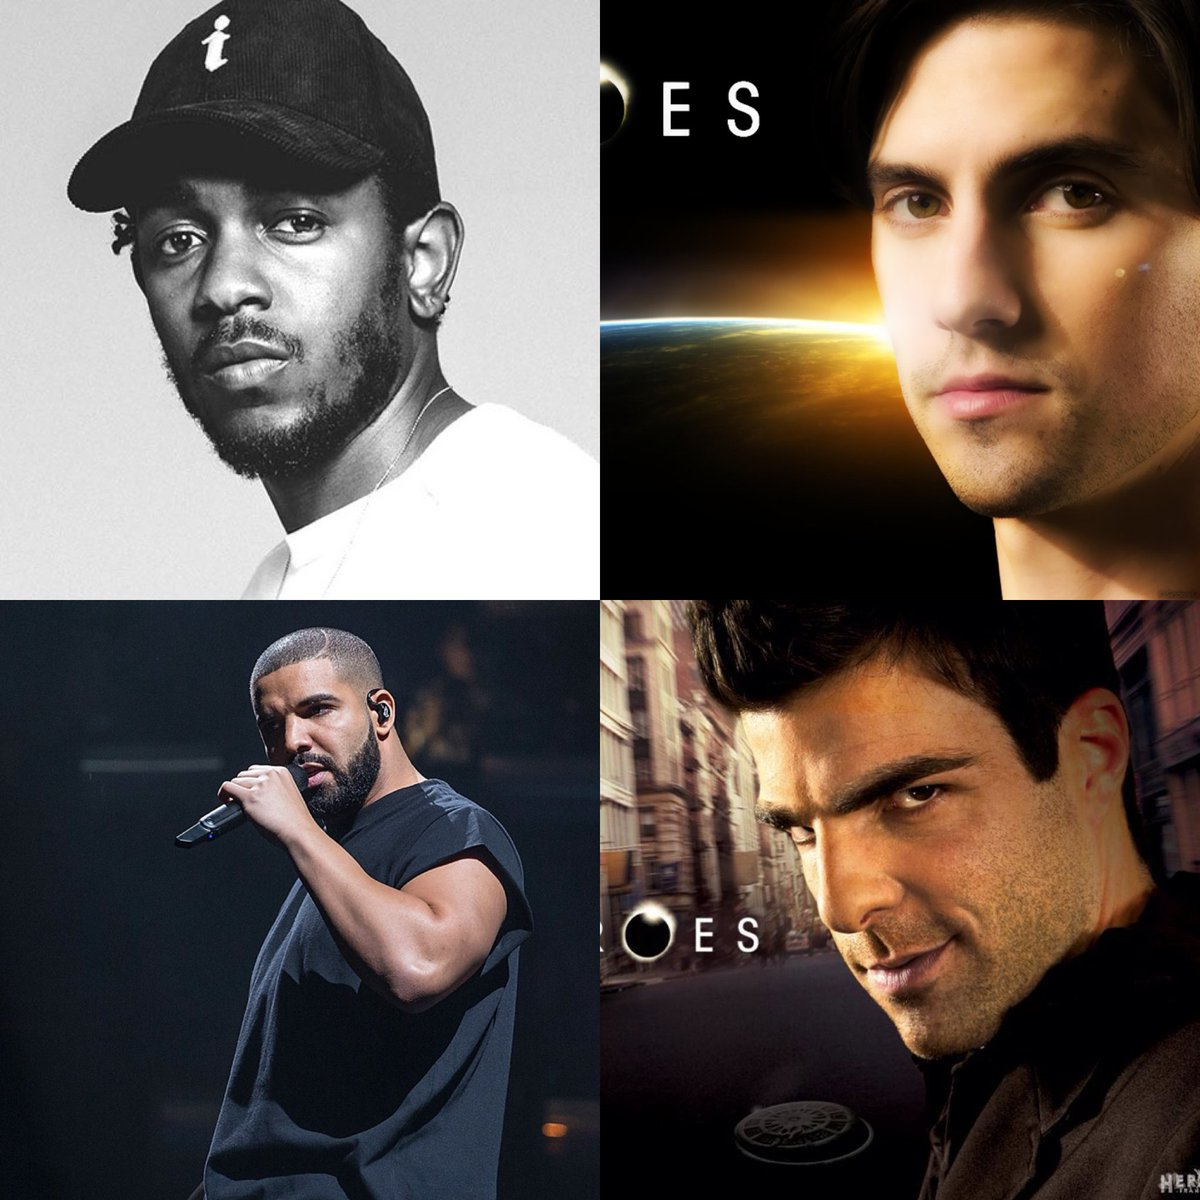 The Greatest Rapper Alive… Kendrick Lamar Asserts His Authority Over Drake   Article by Kwasi Addo